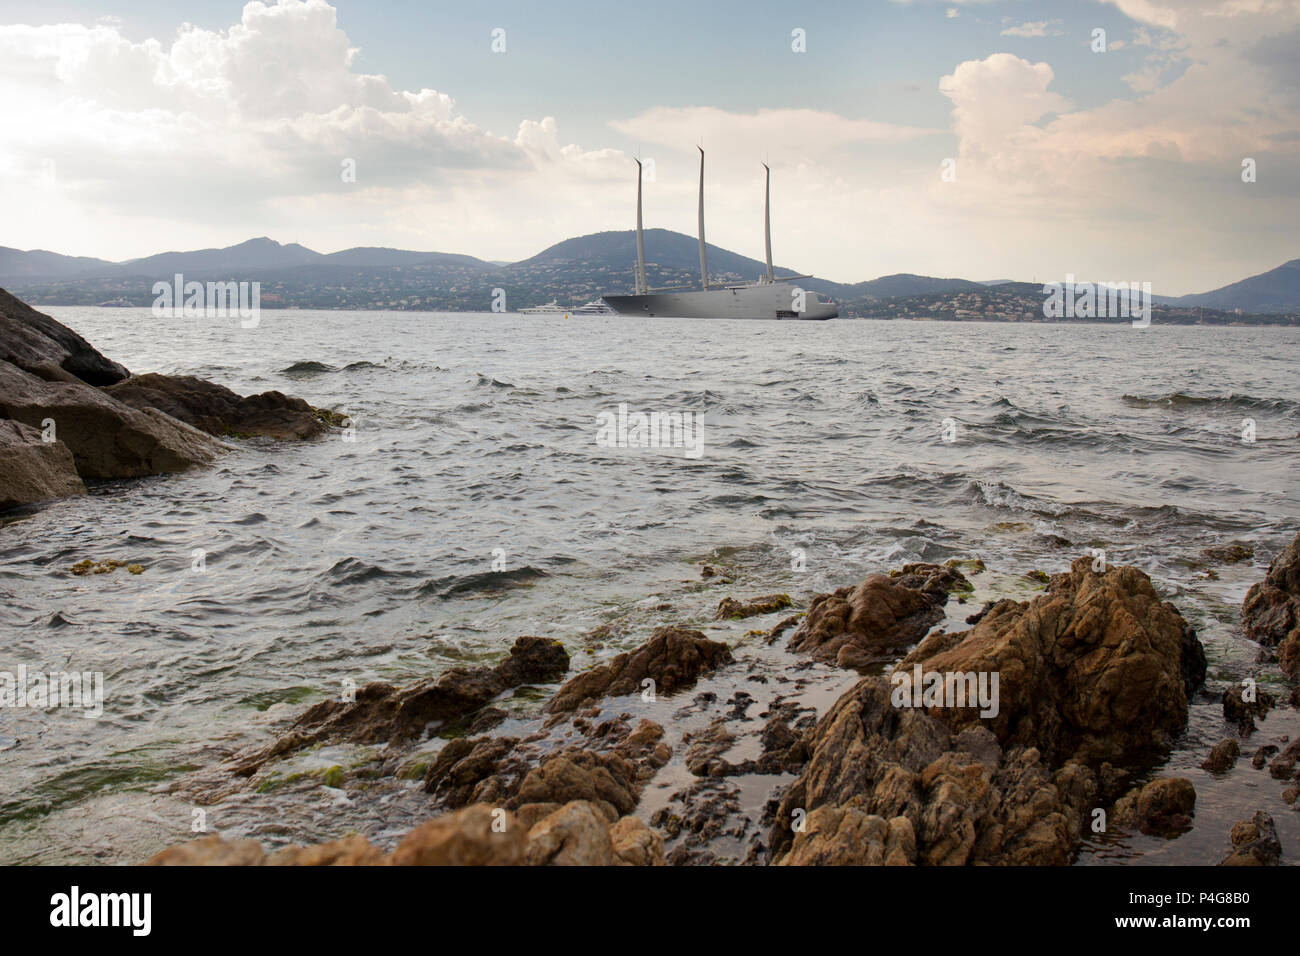 "Saint Tropez. France 21th, 2018.The big ""Sailing A"" in front of Saint Tropez Gulf. The  Sailing A is the most biggest sailing yacht in the world, builtd in Germany with the most advanced techonology. Lenght 142.81 meters; 12700 tons, designed by Phillippe Starck and Dolker & Voges. The owner of the ship is Andrei Melnichenko from Russia. Photo Alejandro Sala/Alamy Llive News Stock Photo"